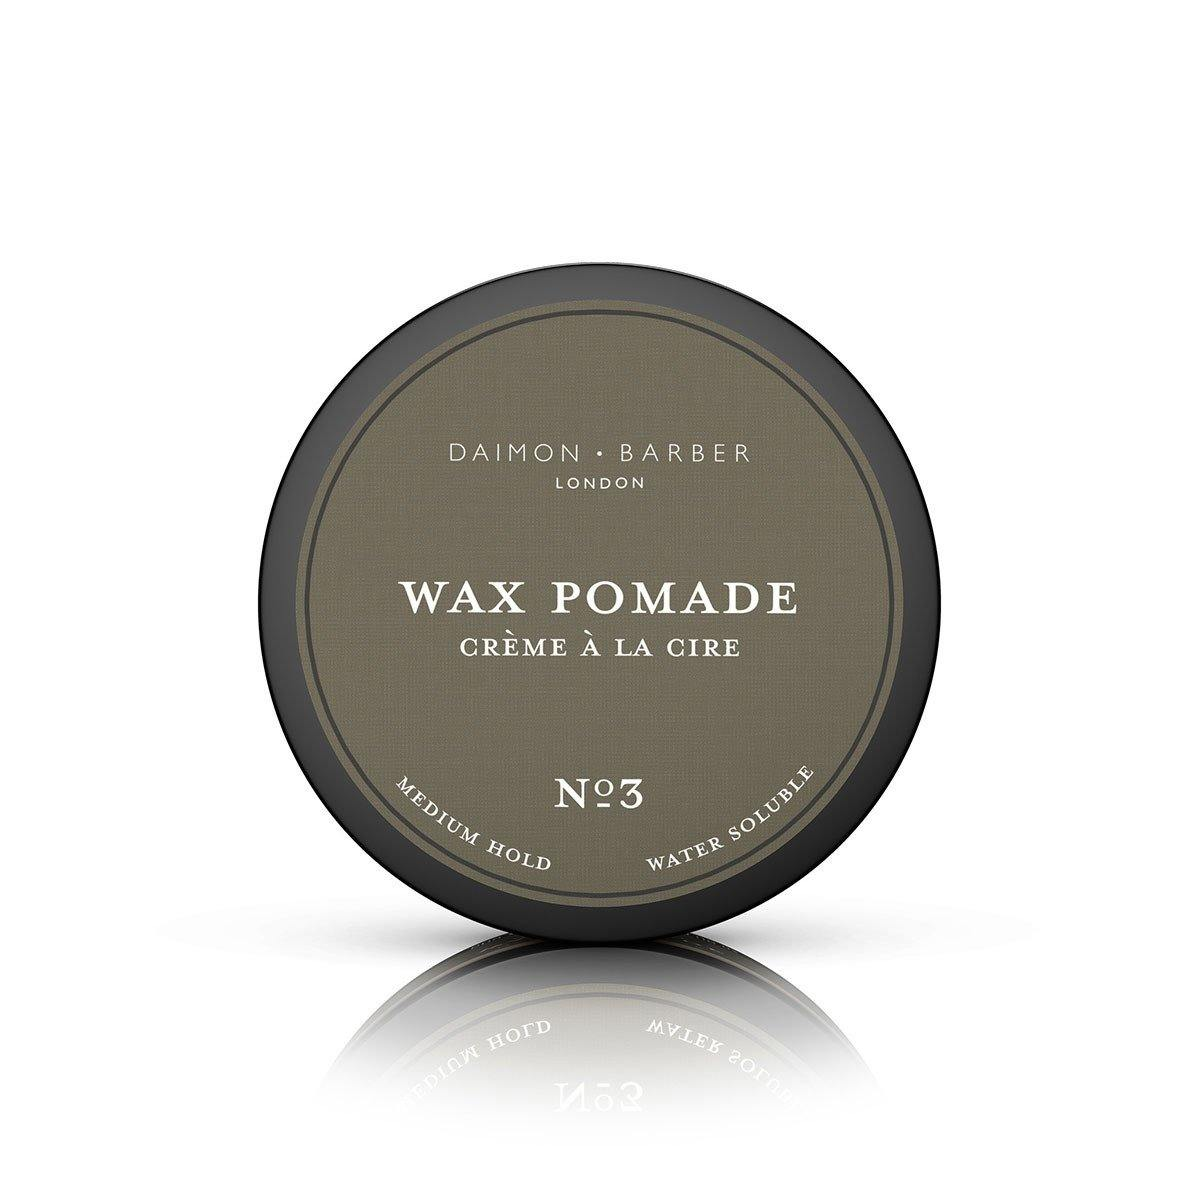 Wax Pomade Nº 3 - Cera de Peinado de The Daimon Barber